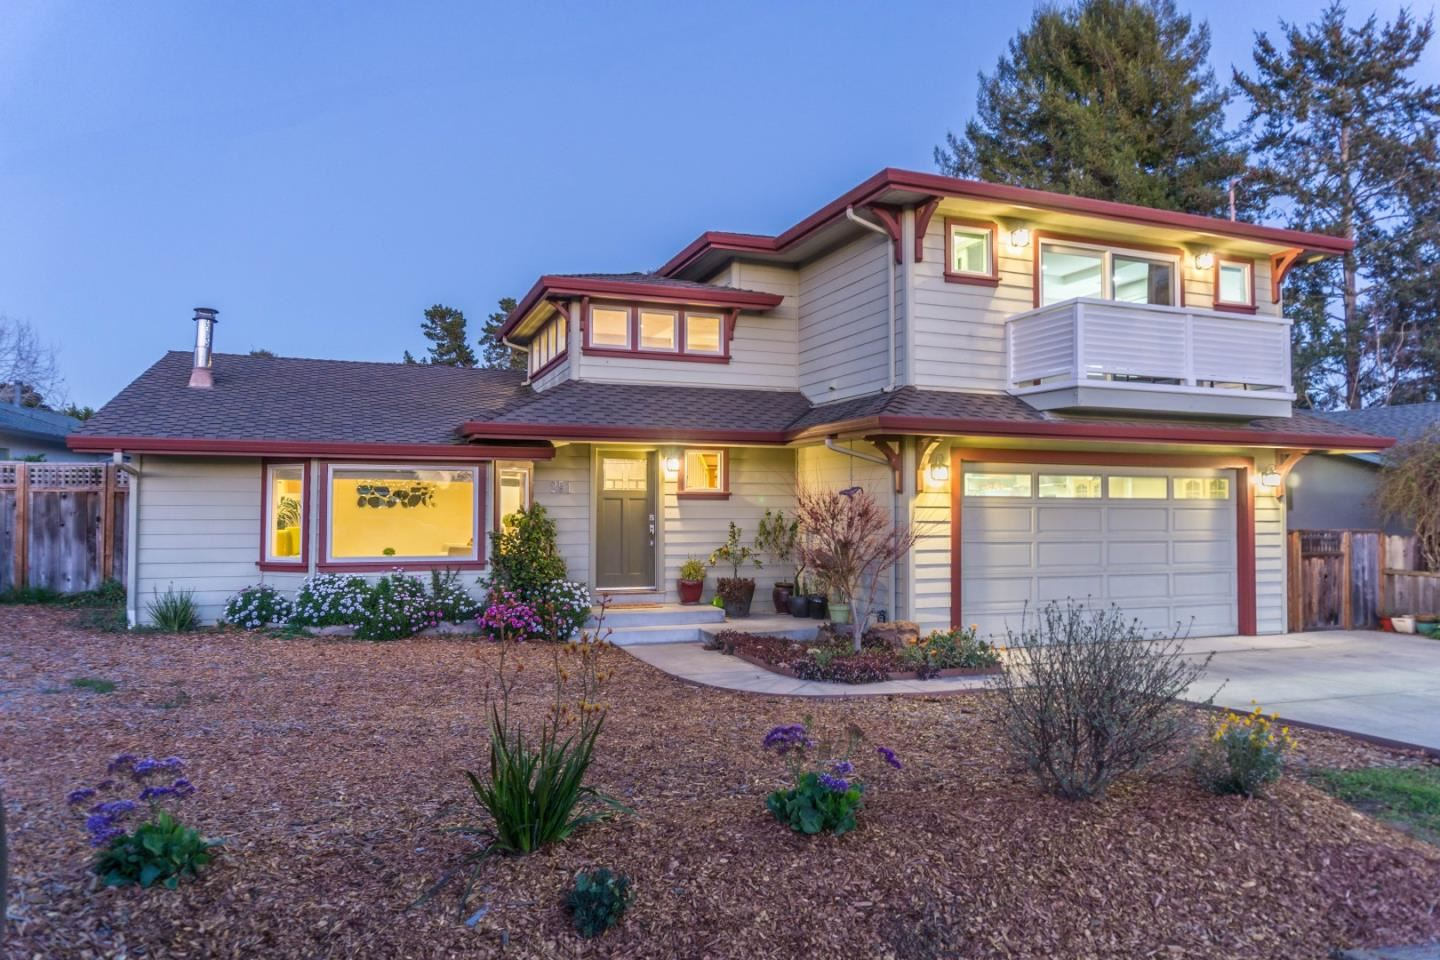 251 Sierra Vista DR, Aptos, CA 95003 - #: ML81782501